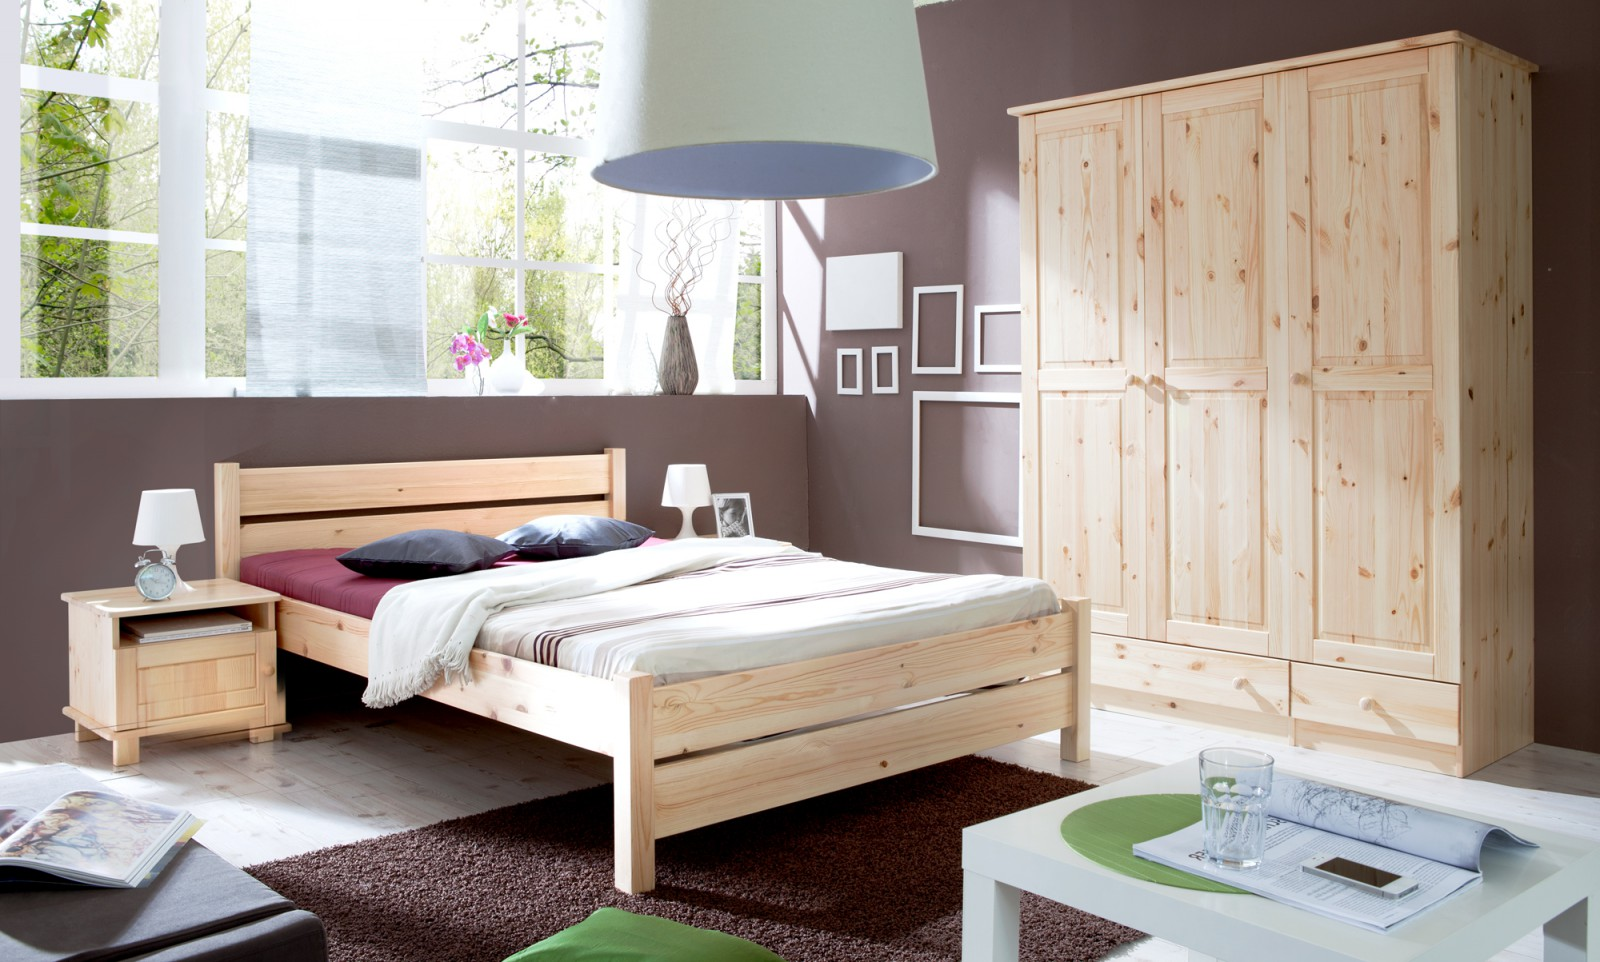 doppelbett bora 140x200 natur wohnwelt schlafzimmer betten doppelbetten. Black Bedroom Furniture Sets. Home Design Ideas